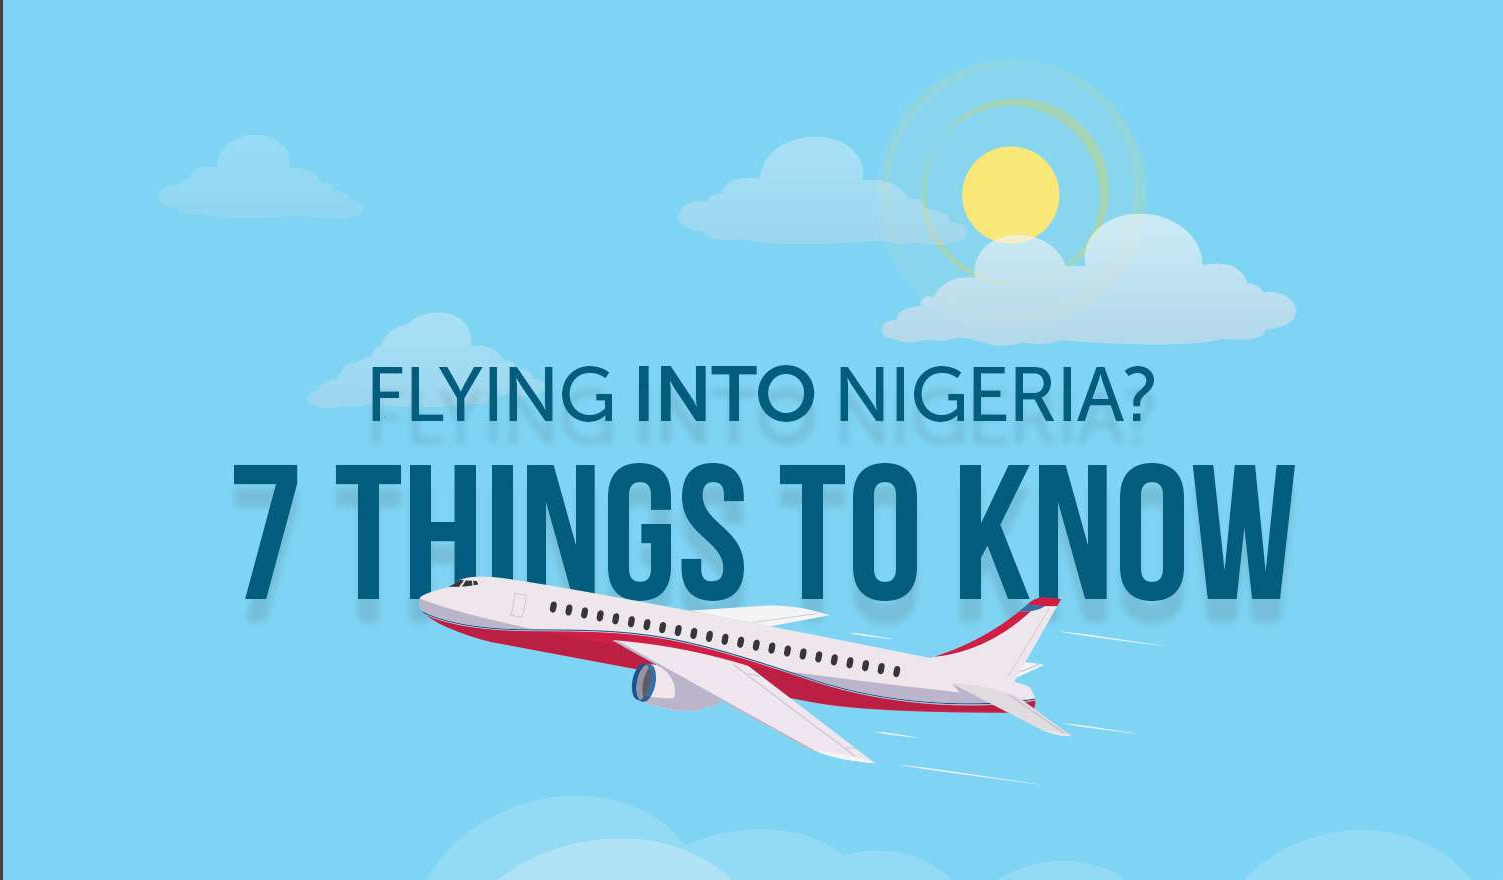 Guidelines for Flying into Nigeria